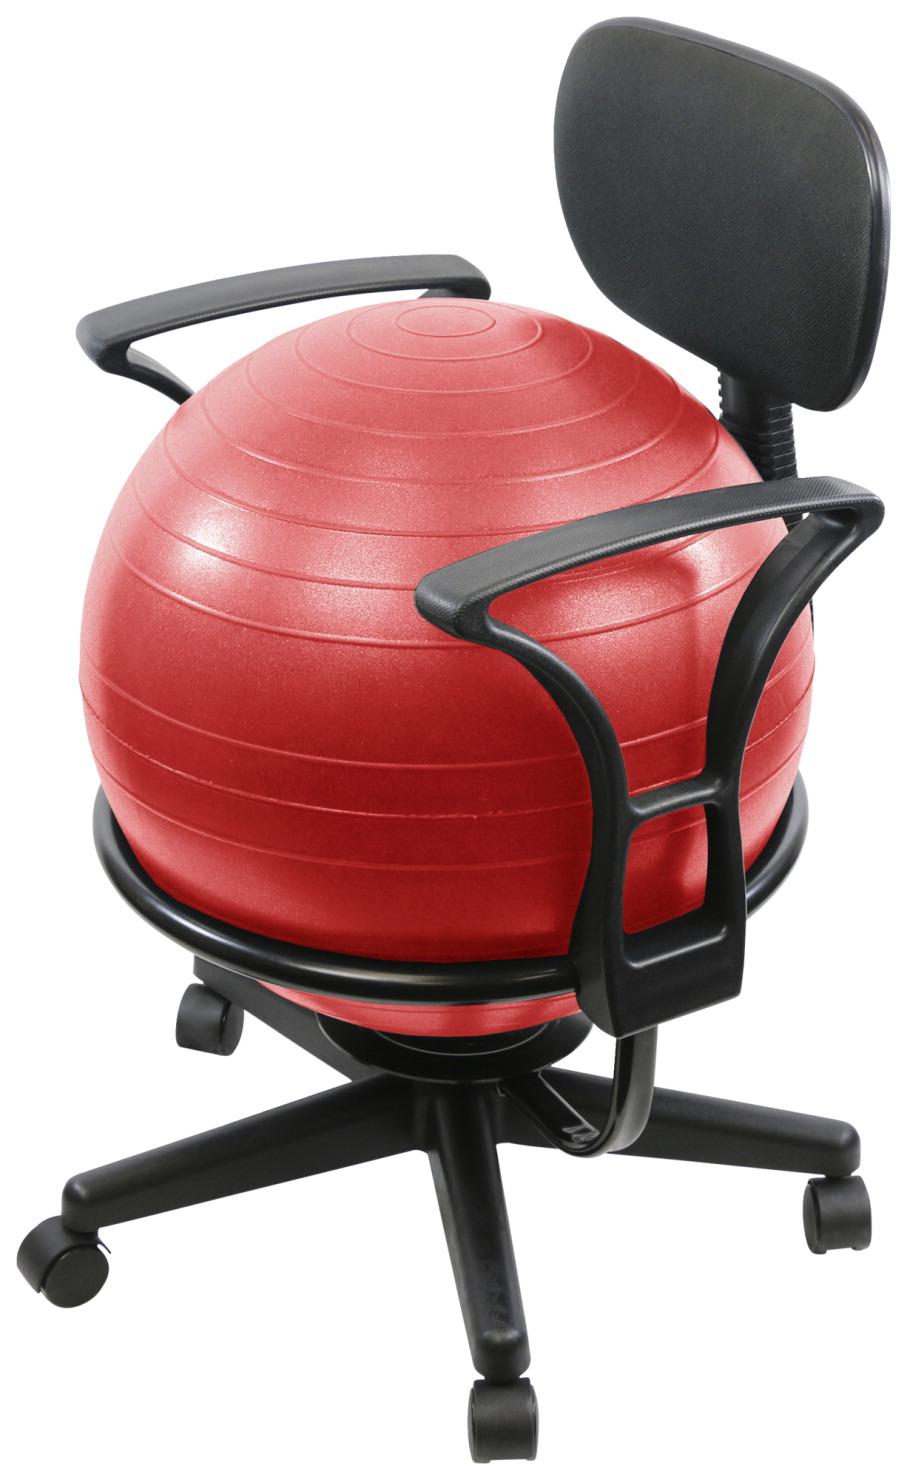 CanDo® Ball Chair Metal with Back and Arms, 22 x 26 x 32 Inches, Various Options